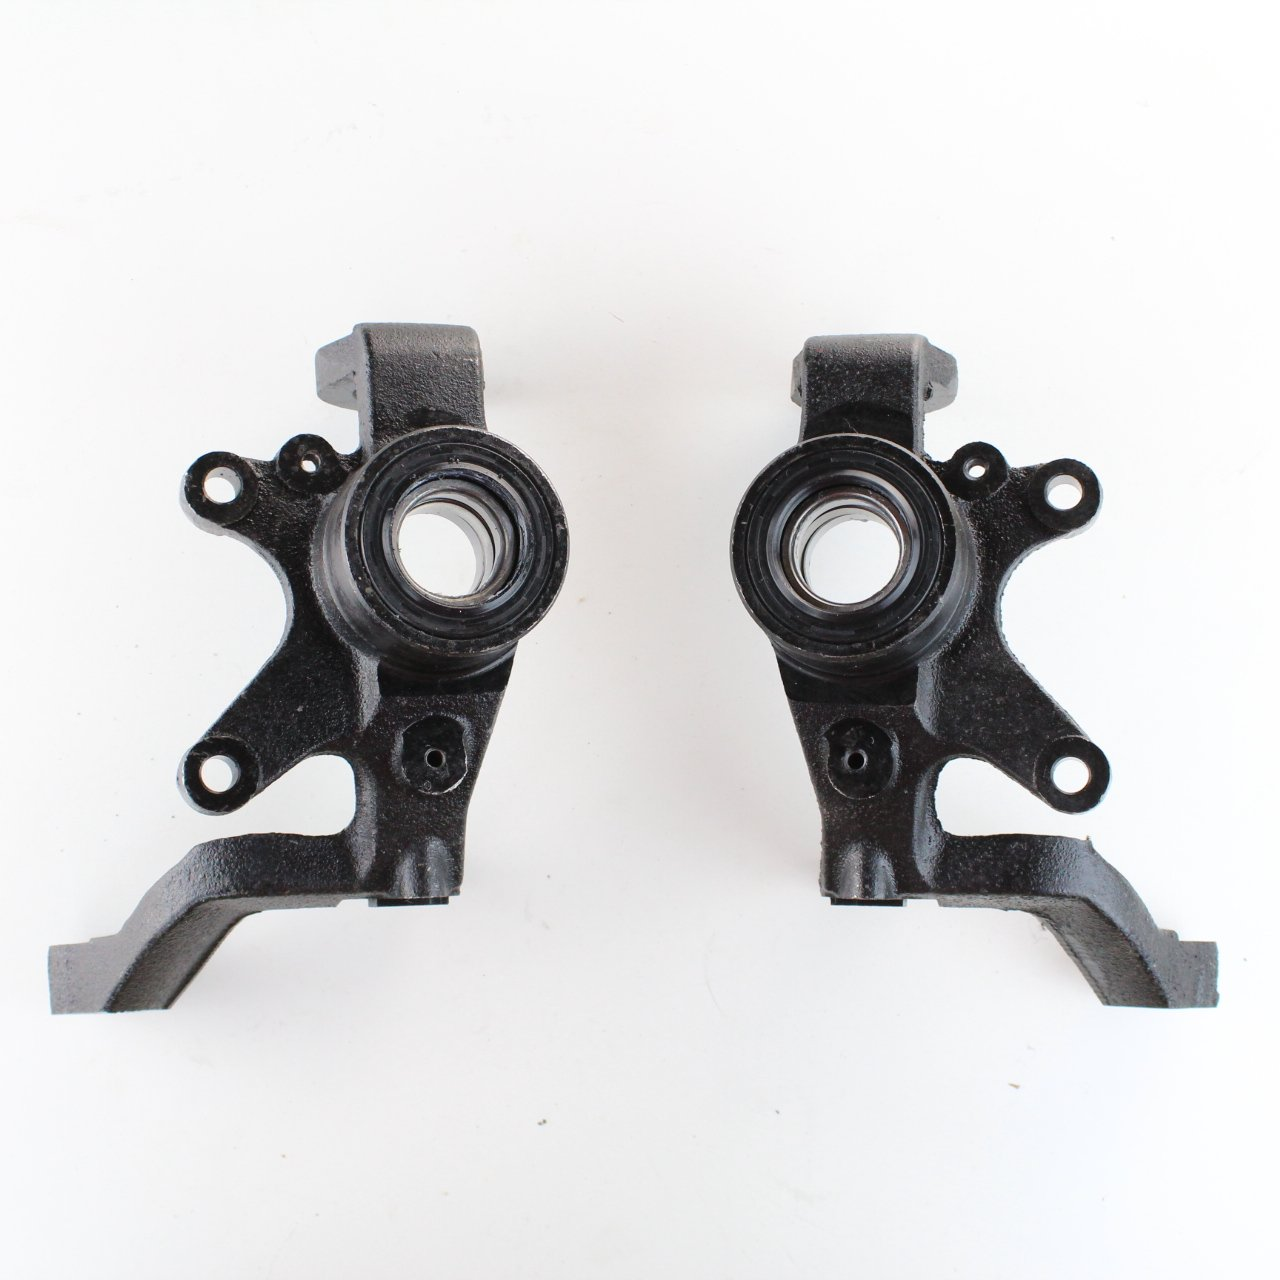 NICHE Front Left And Right Steering Knuckles for Yamaha Rhino 660 2004-2007 Niche Industries